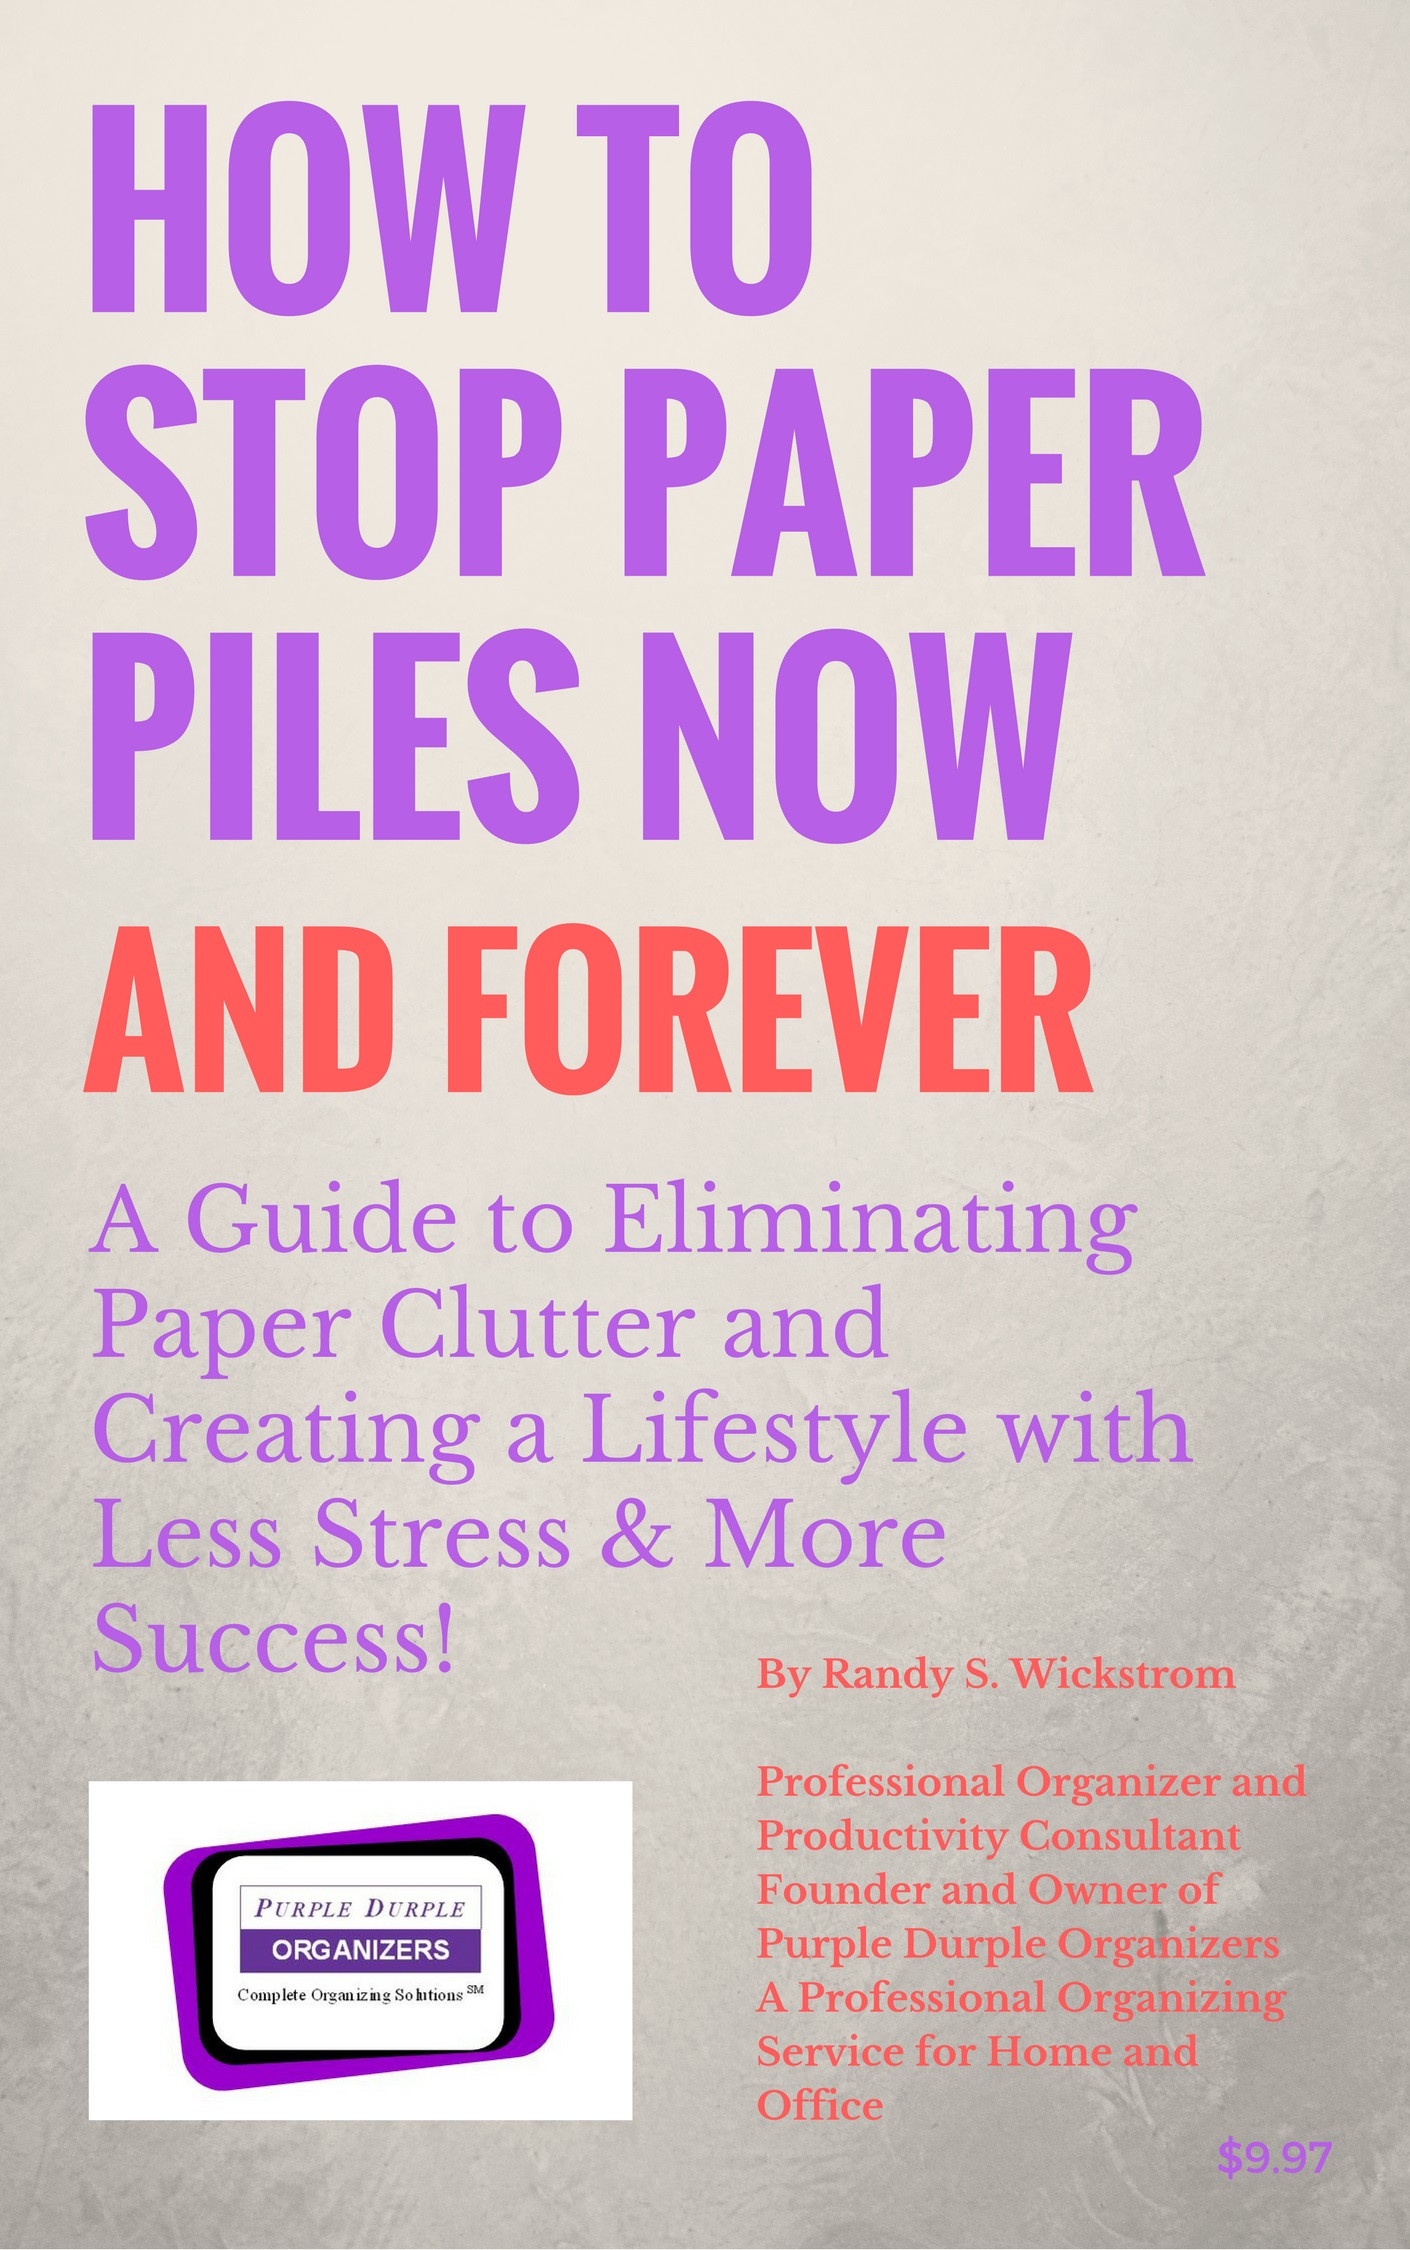 How to Stop Paper Piles Now and Forever Kindle E BOOK Cover Image